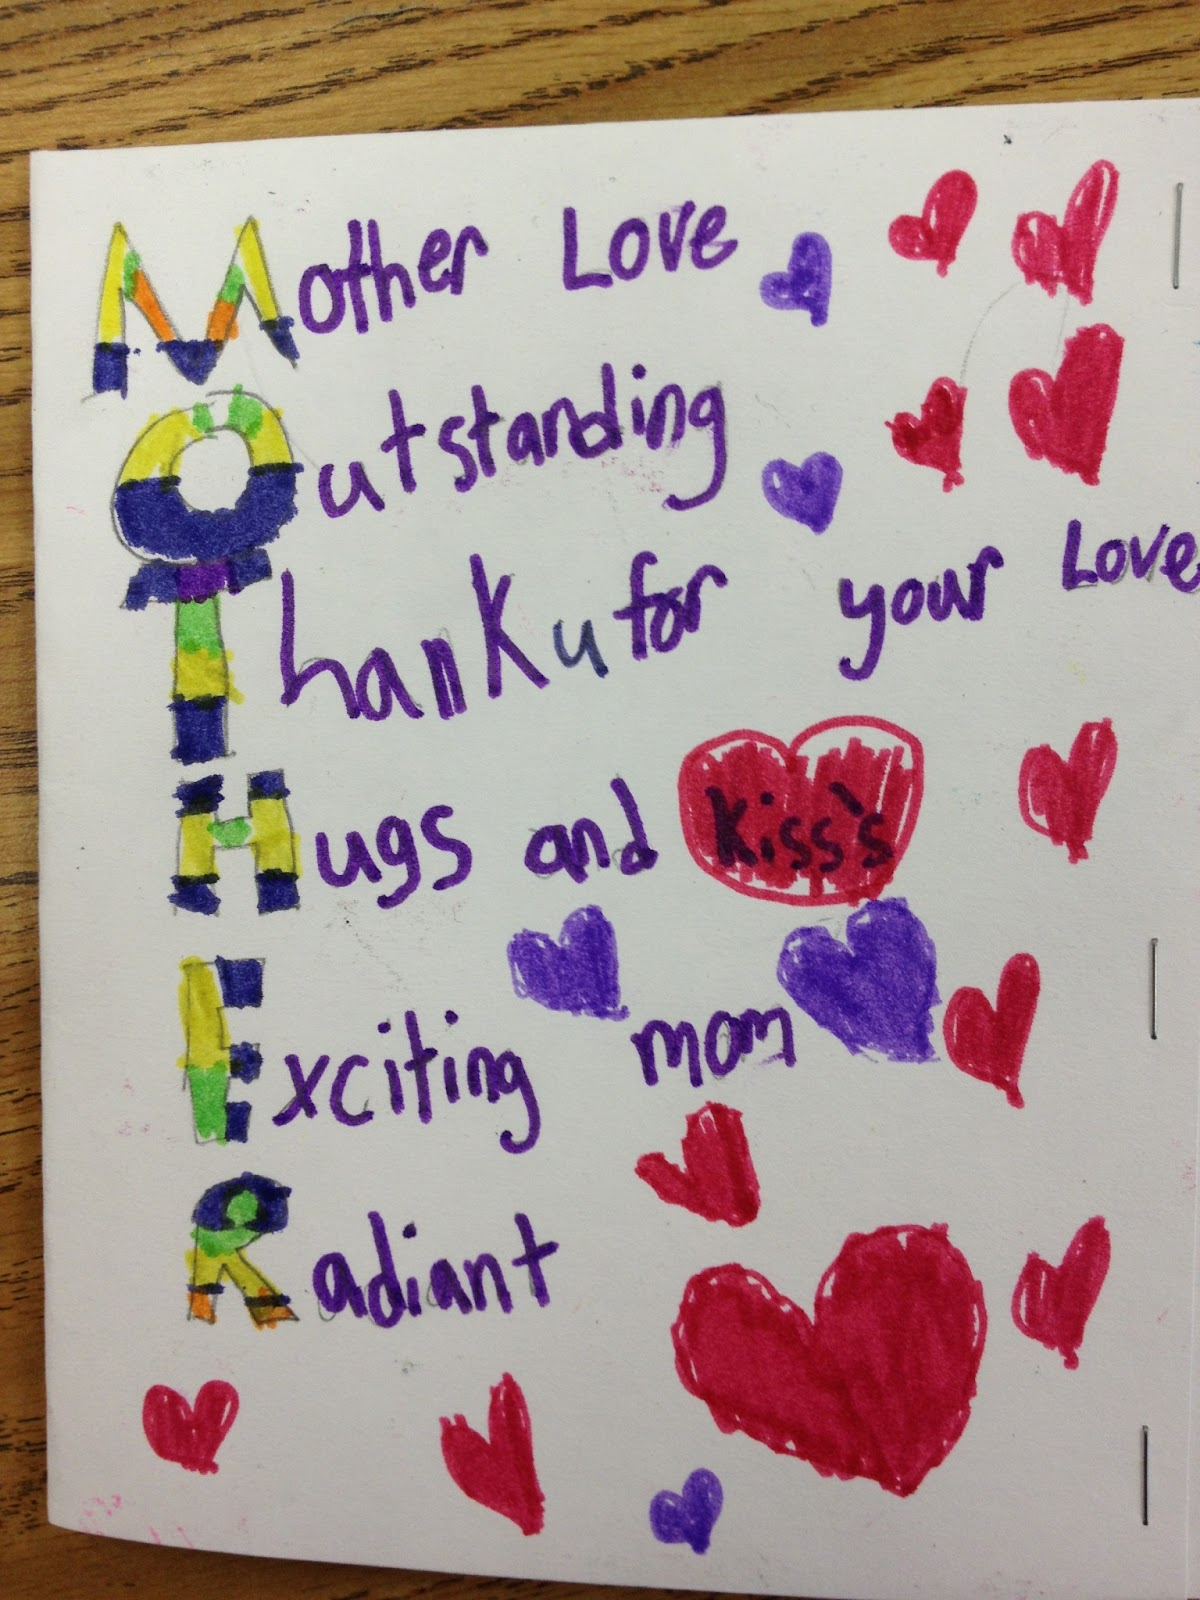 Love You Mom Poems In Spanish And English & Becuo